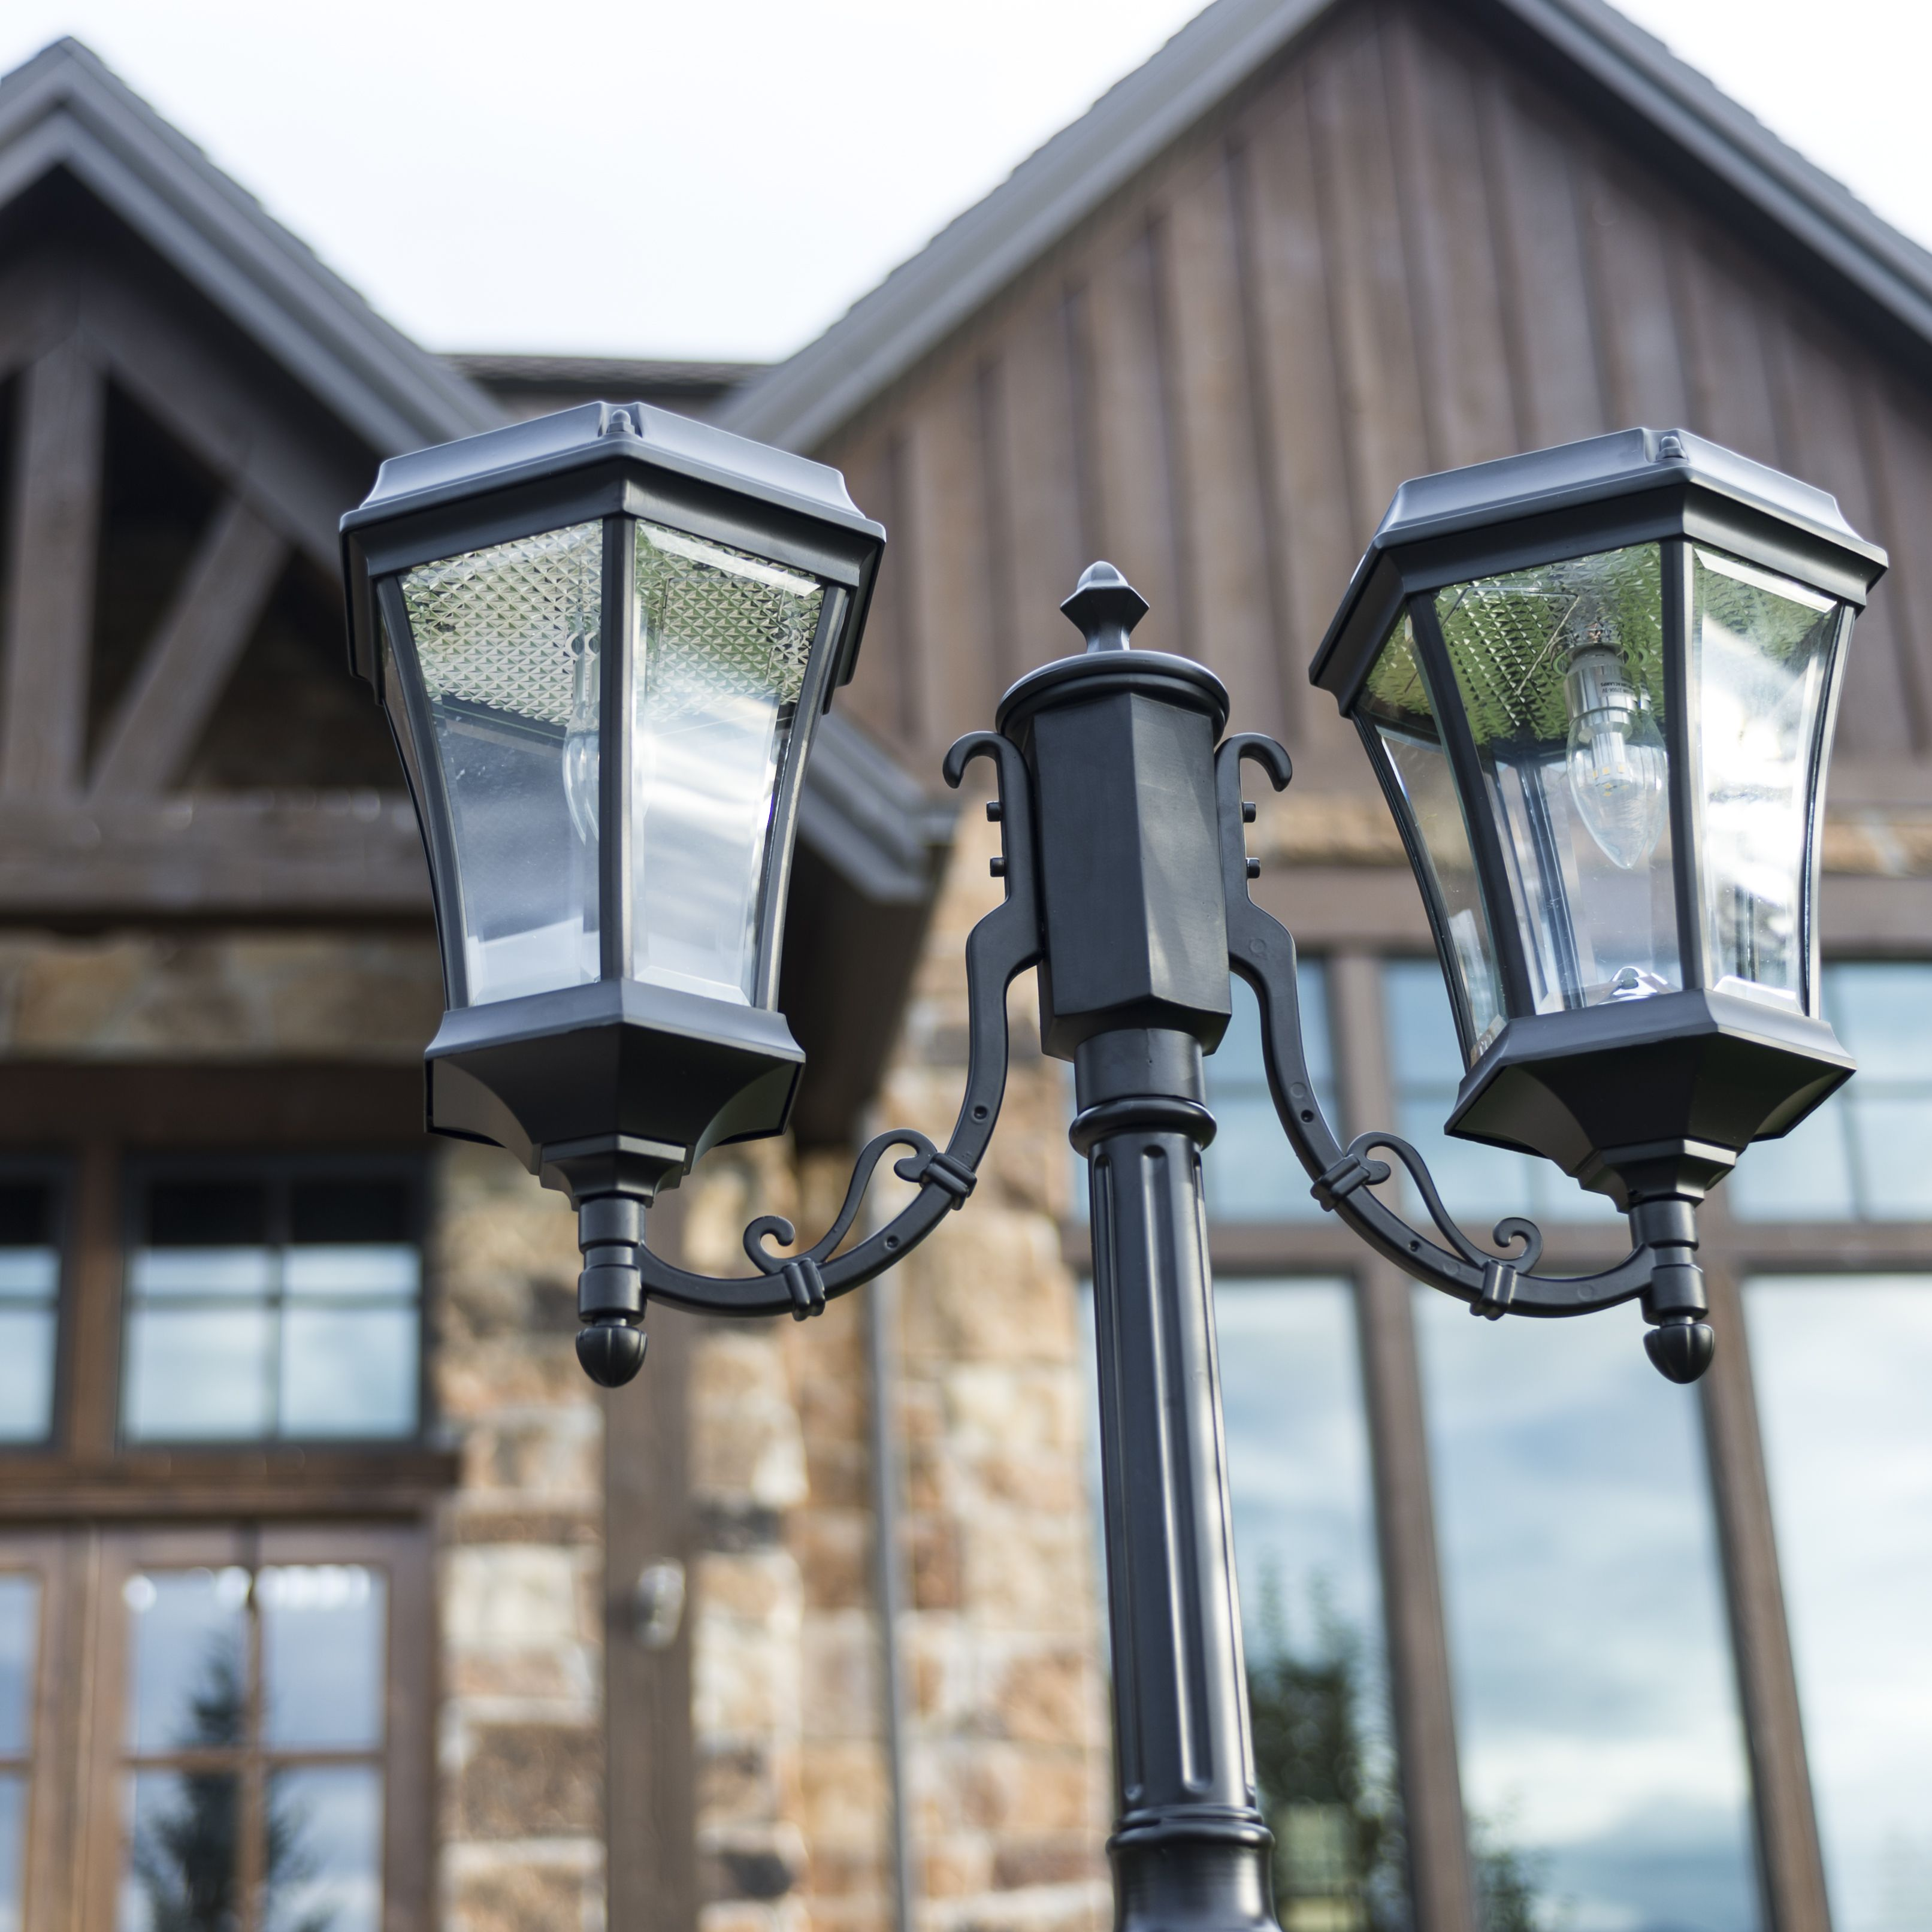 illuminate bright light with the elegant victorian bulb double solar lamp  post  this perfect diy solar lamp post requires no electrical wiring for